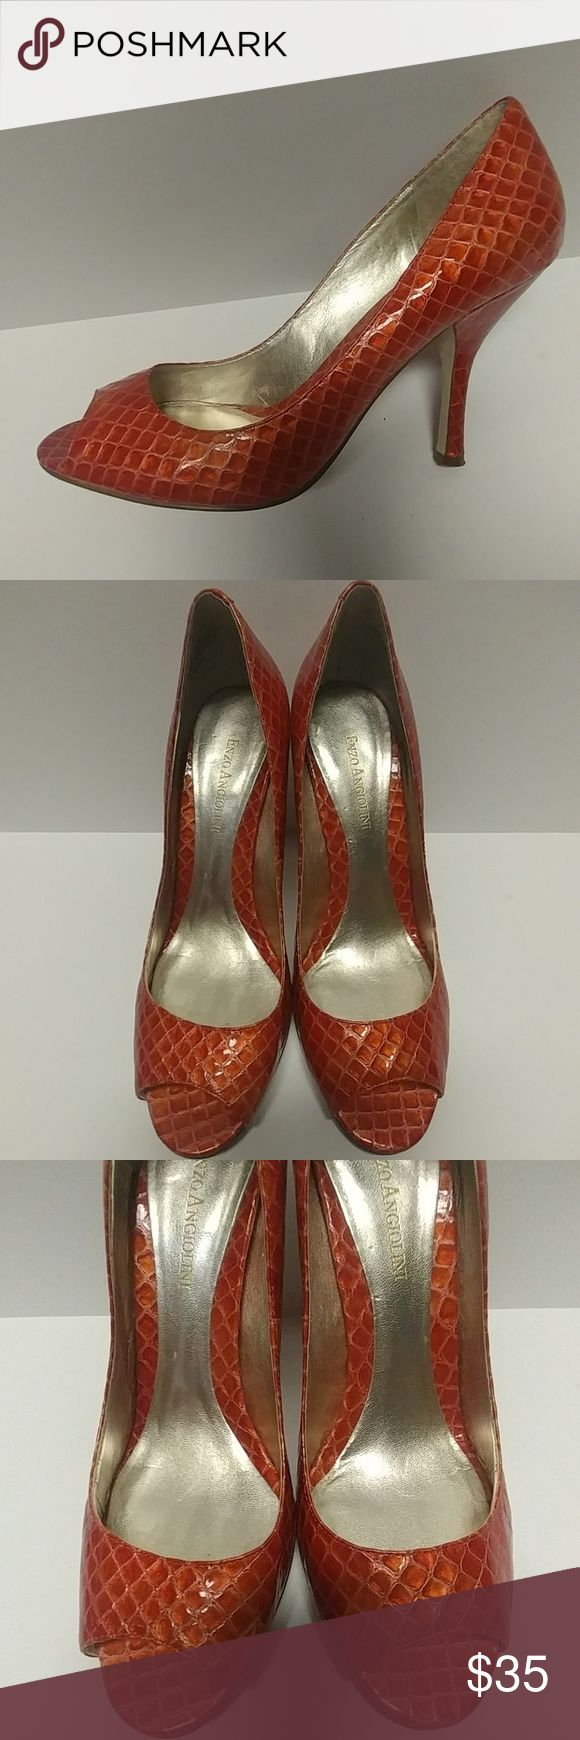 Enzo angiolini patent heels sz 8.5 Great condition Enzo Angiolini Shoes Heels